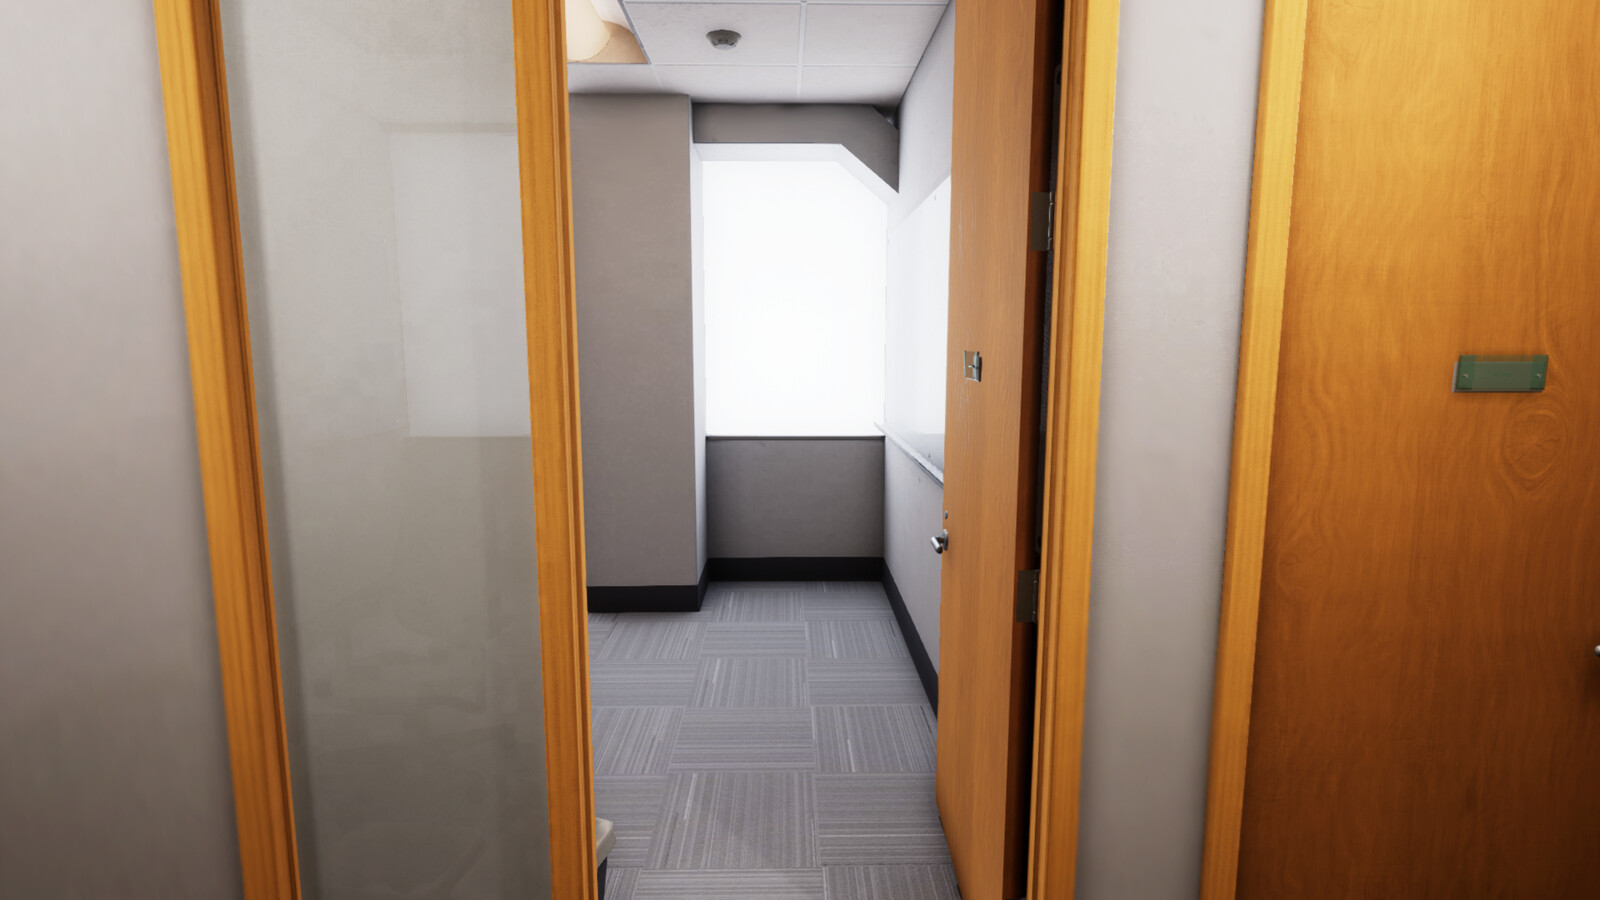 One of the empty offices